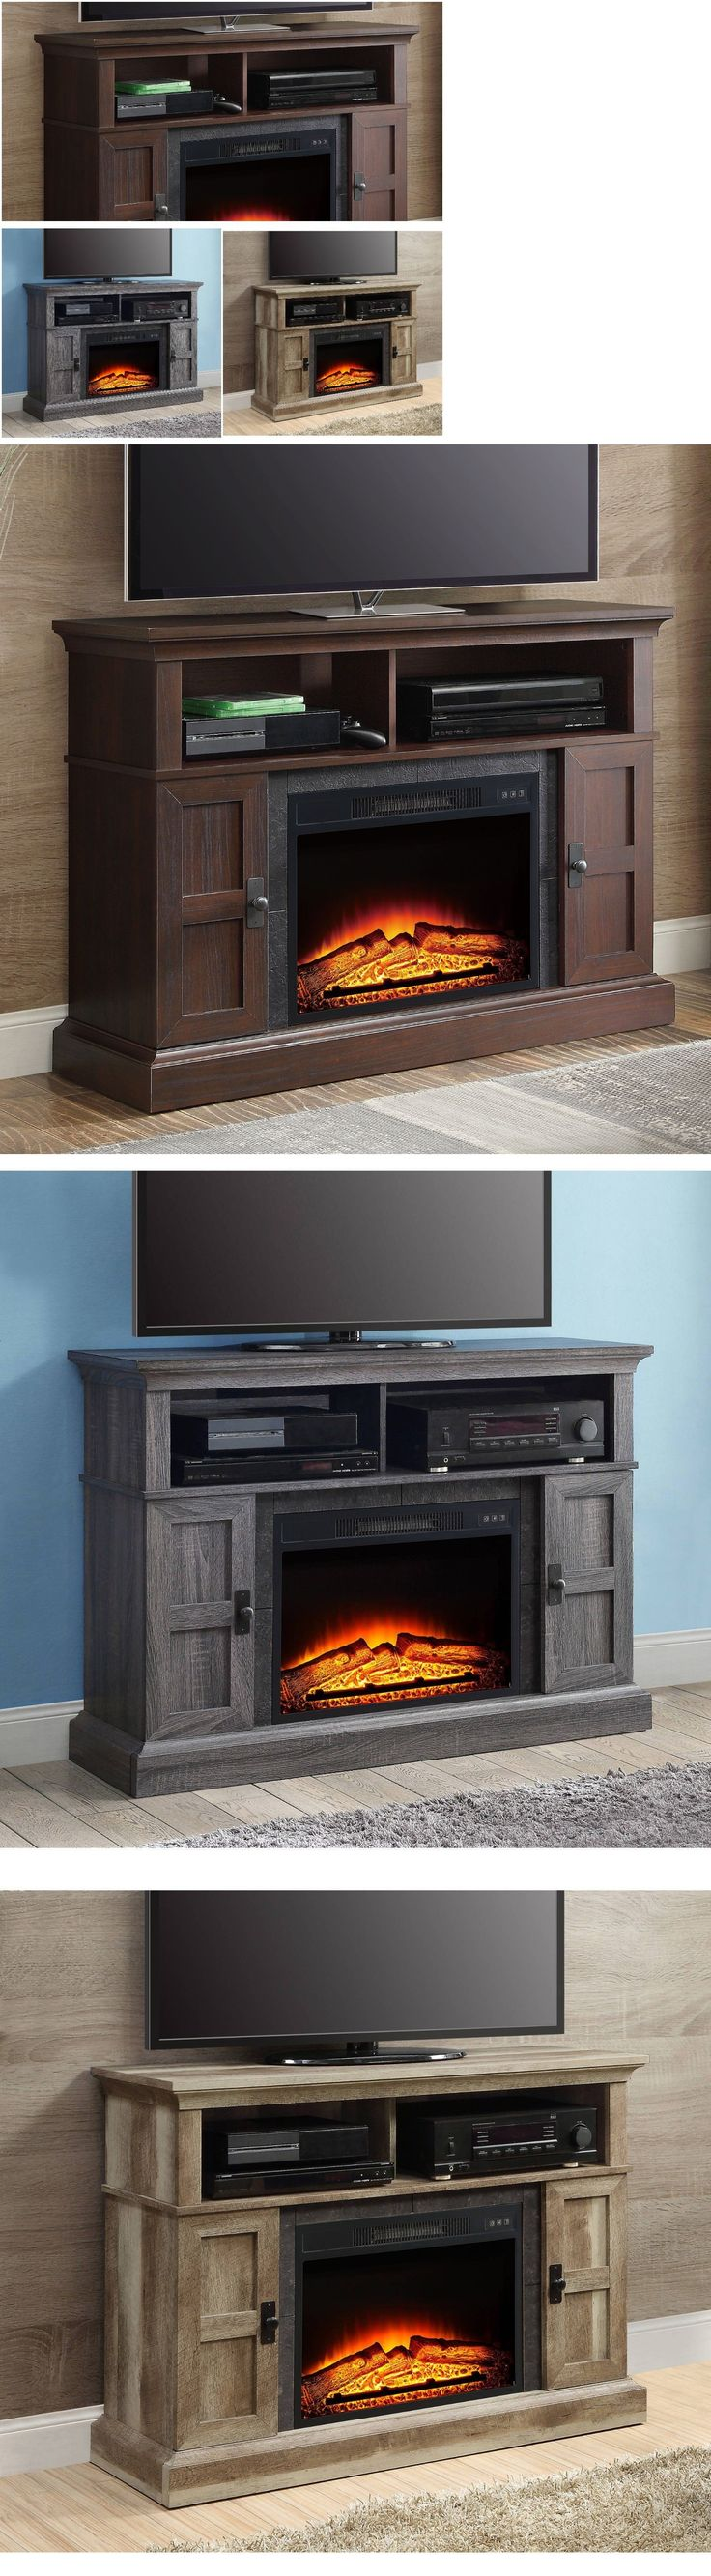 Cheap legends furniture cambridge fireplace media center in cherry - Fireplaces 175756 Media Electric Fireplace Tv Stand 55 Heater Entertainment Center Console Remote